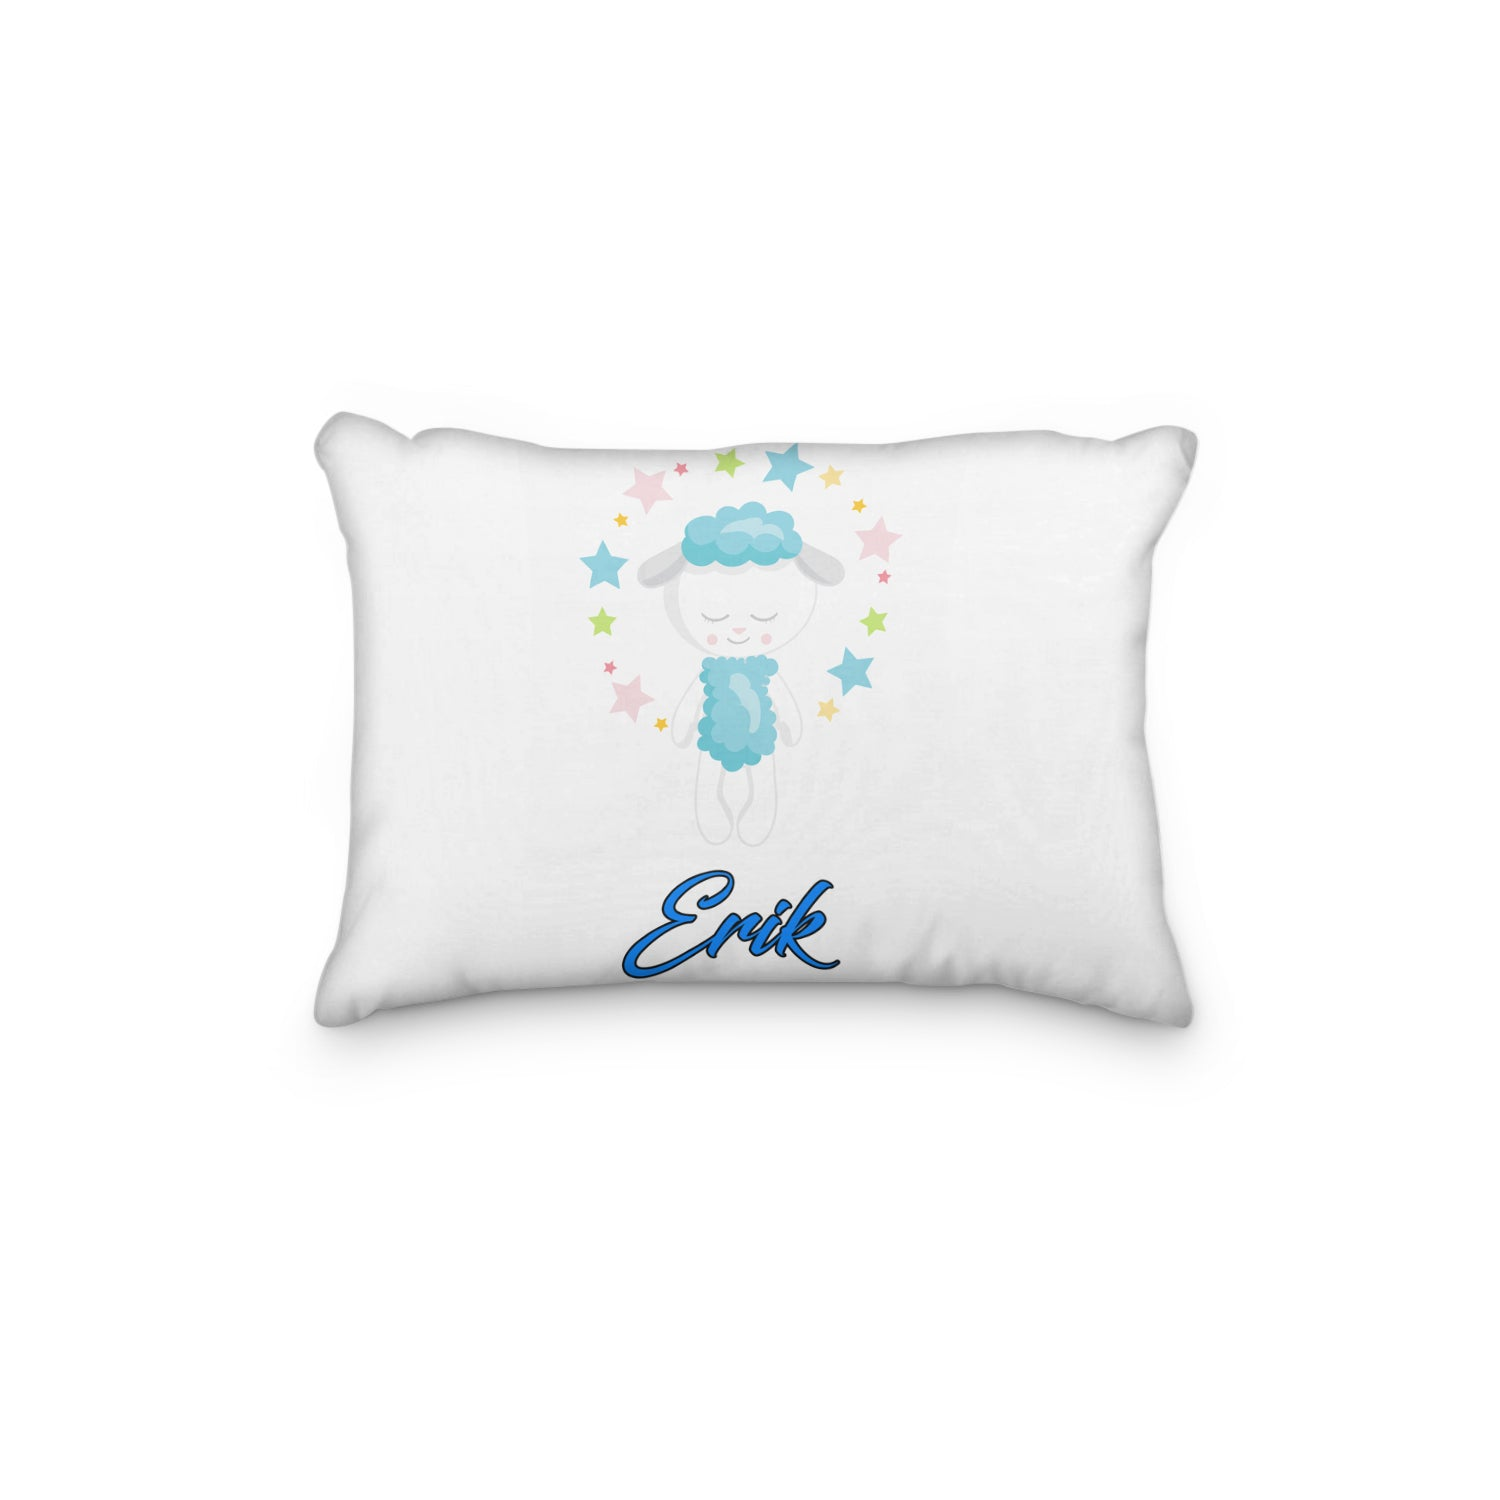 Sheep Dreamy Bedtime Personalized Pillowcase - Incandescently